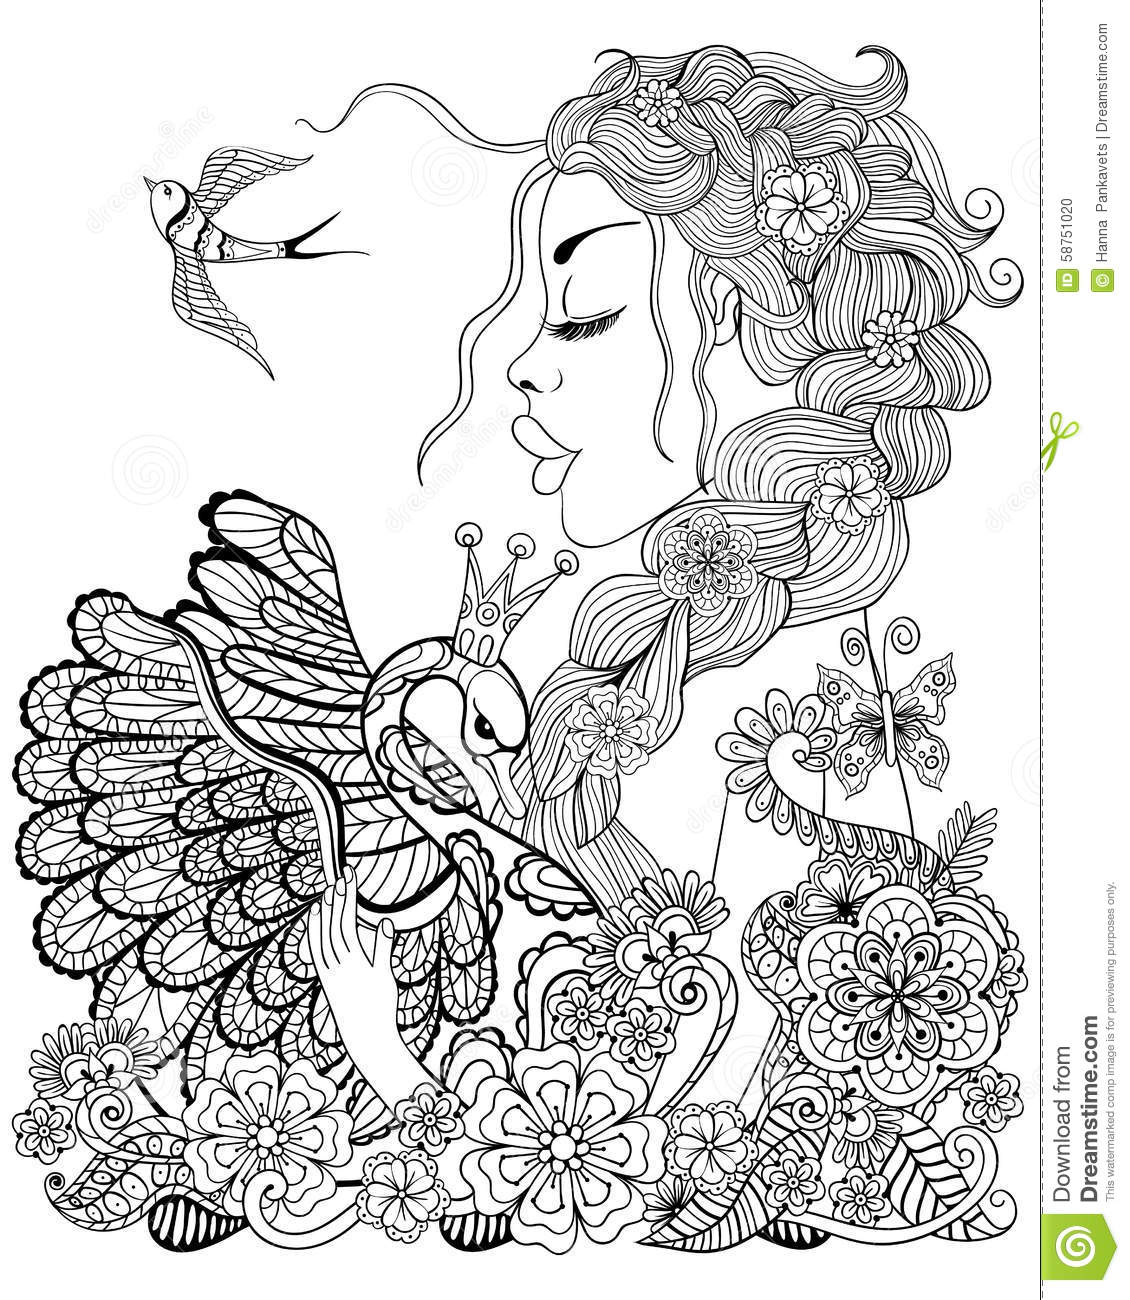 coloring books for adults near me horse head coloring book pages hot girls wallpaper